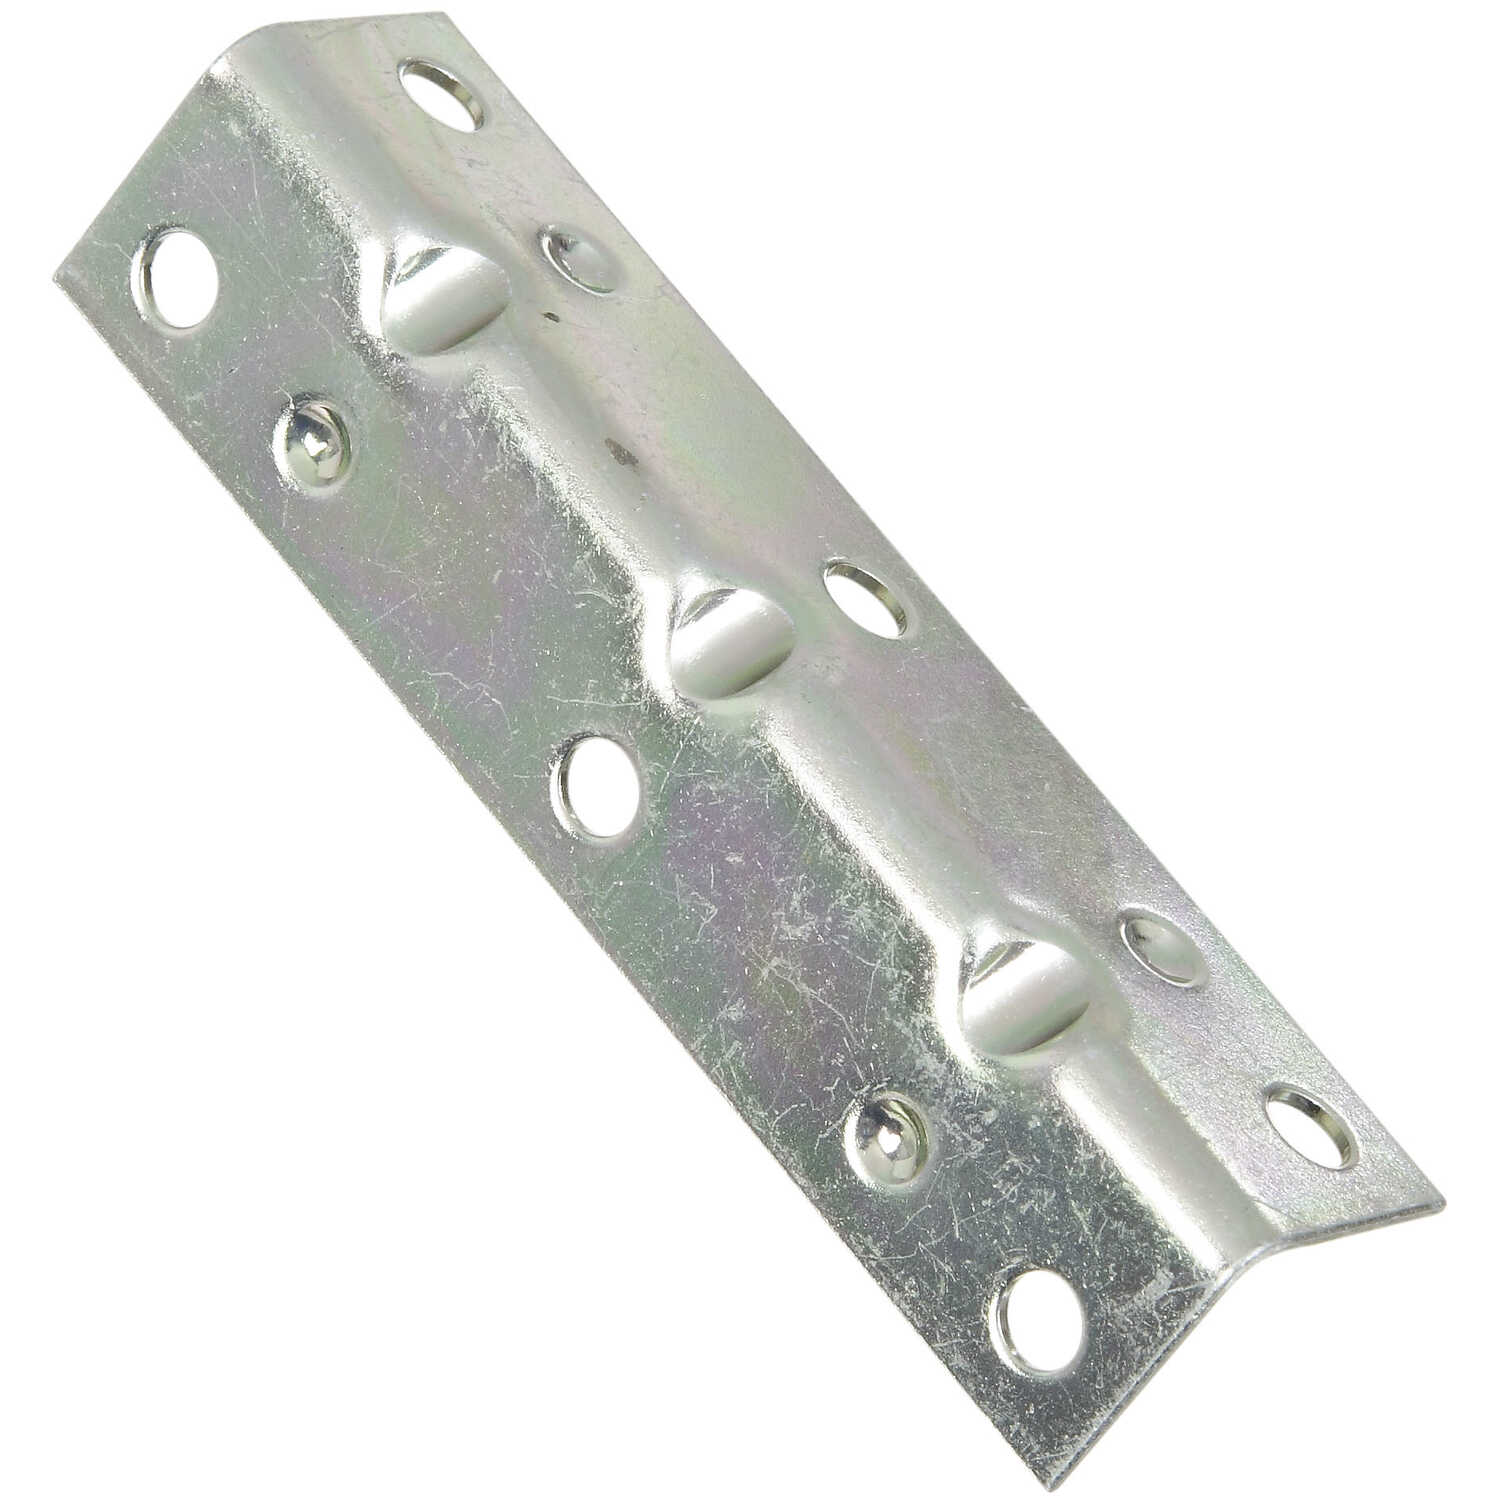 National Hardware  3-1/2 in. H x 3/4 in. W x 0.04 in. D Zinc-Plated  Steel  Inside  Corner Brace